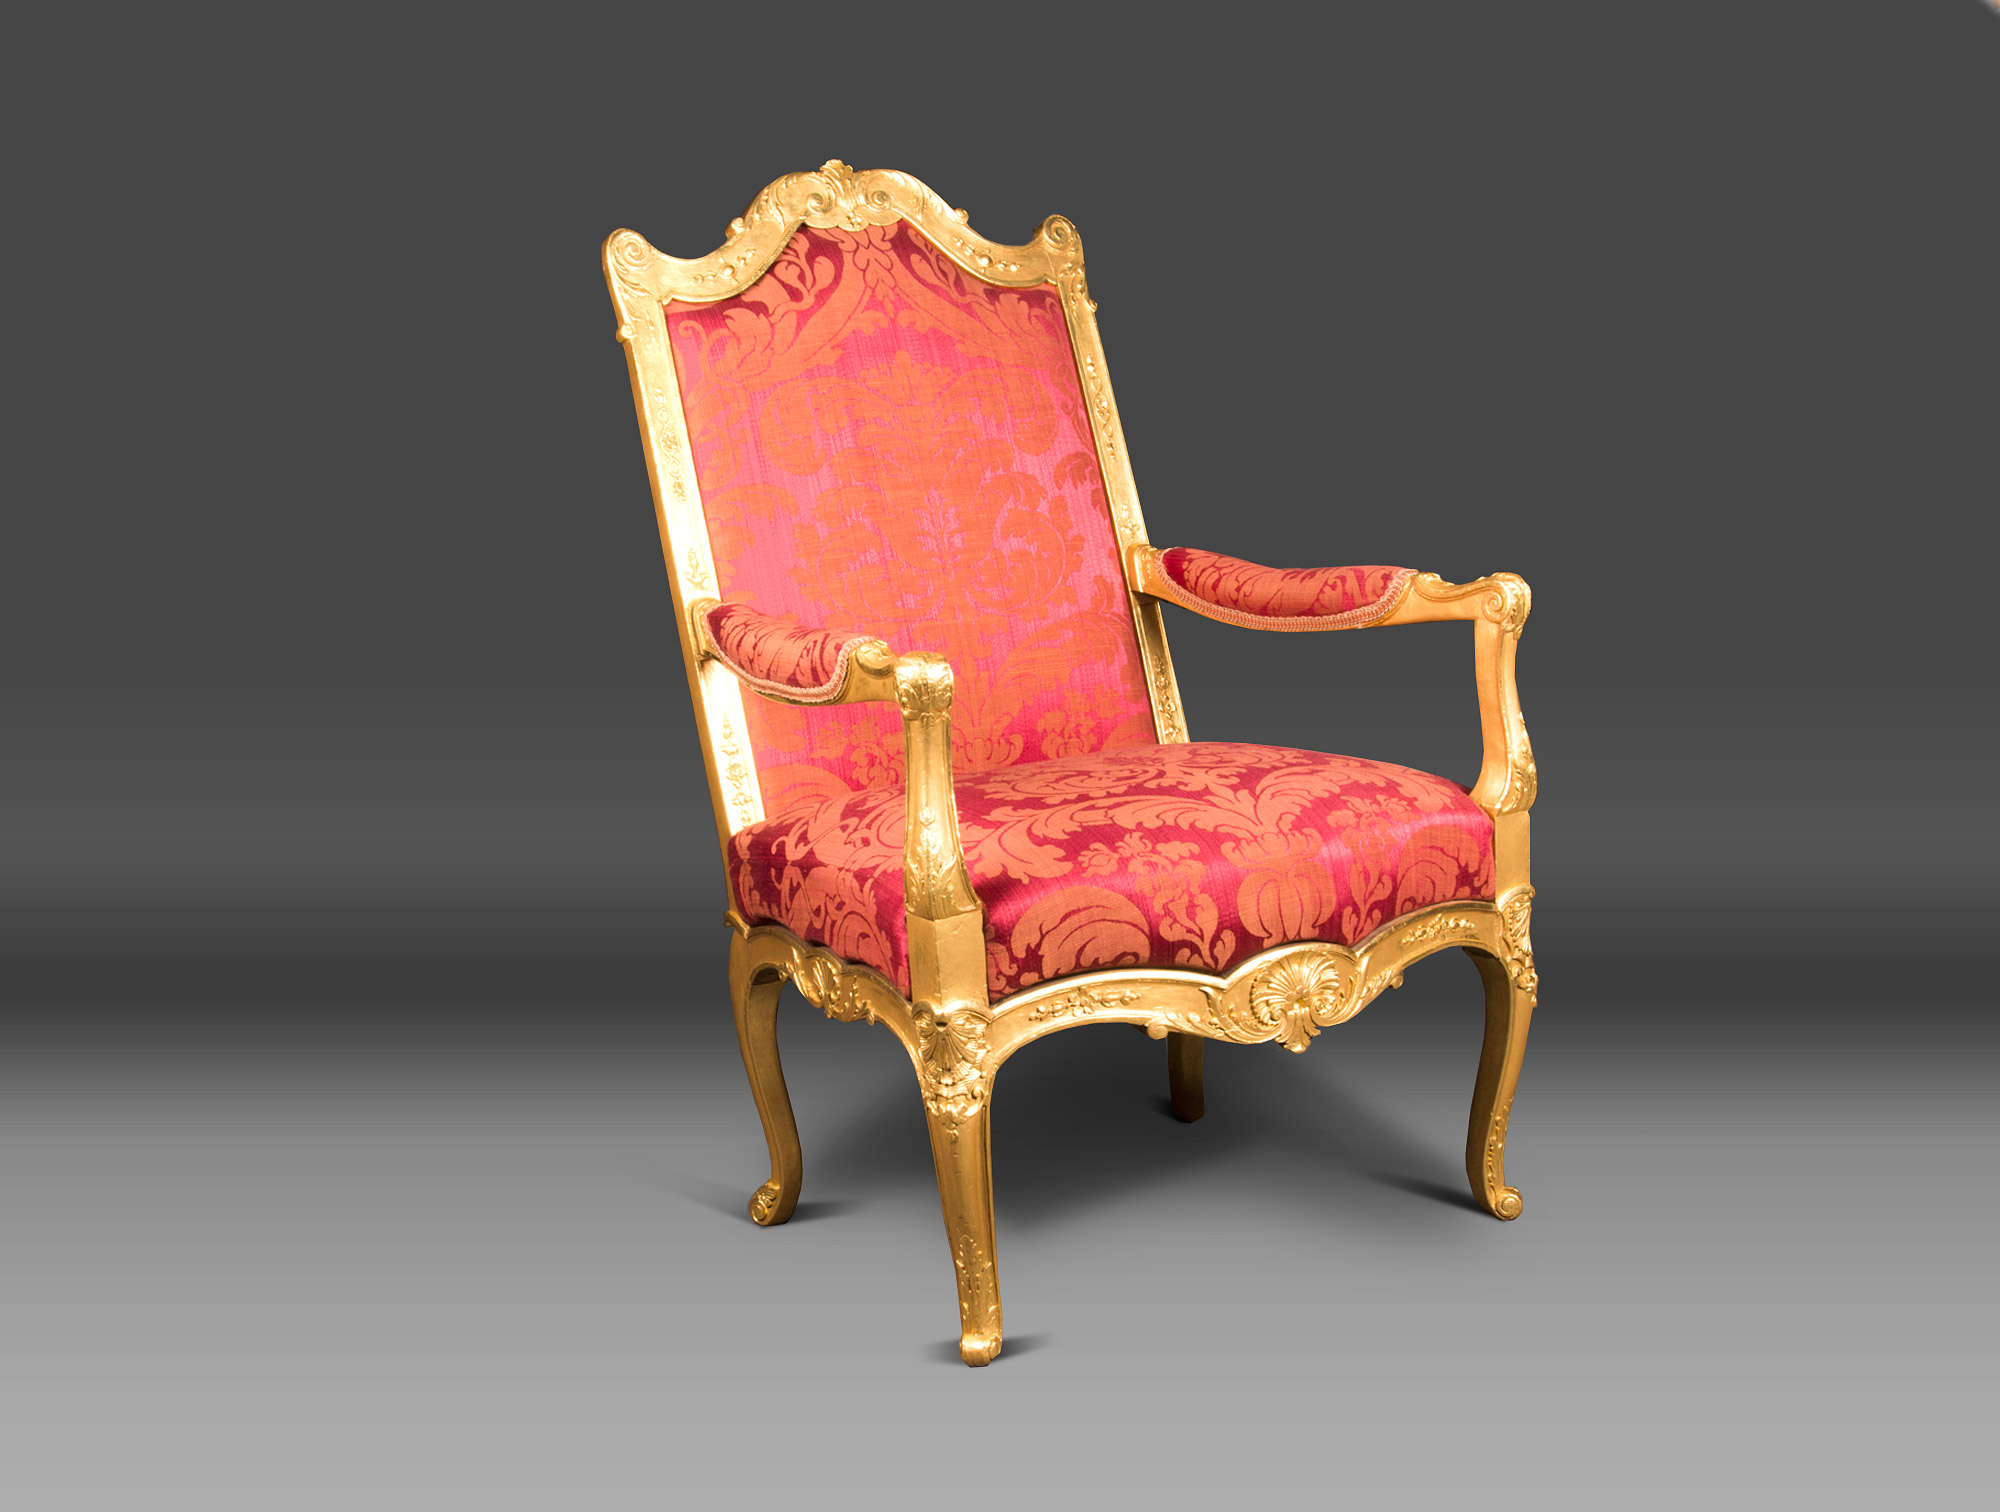 Regency Red Armchair Soubrier Rent Seats Armchair Xviiith